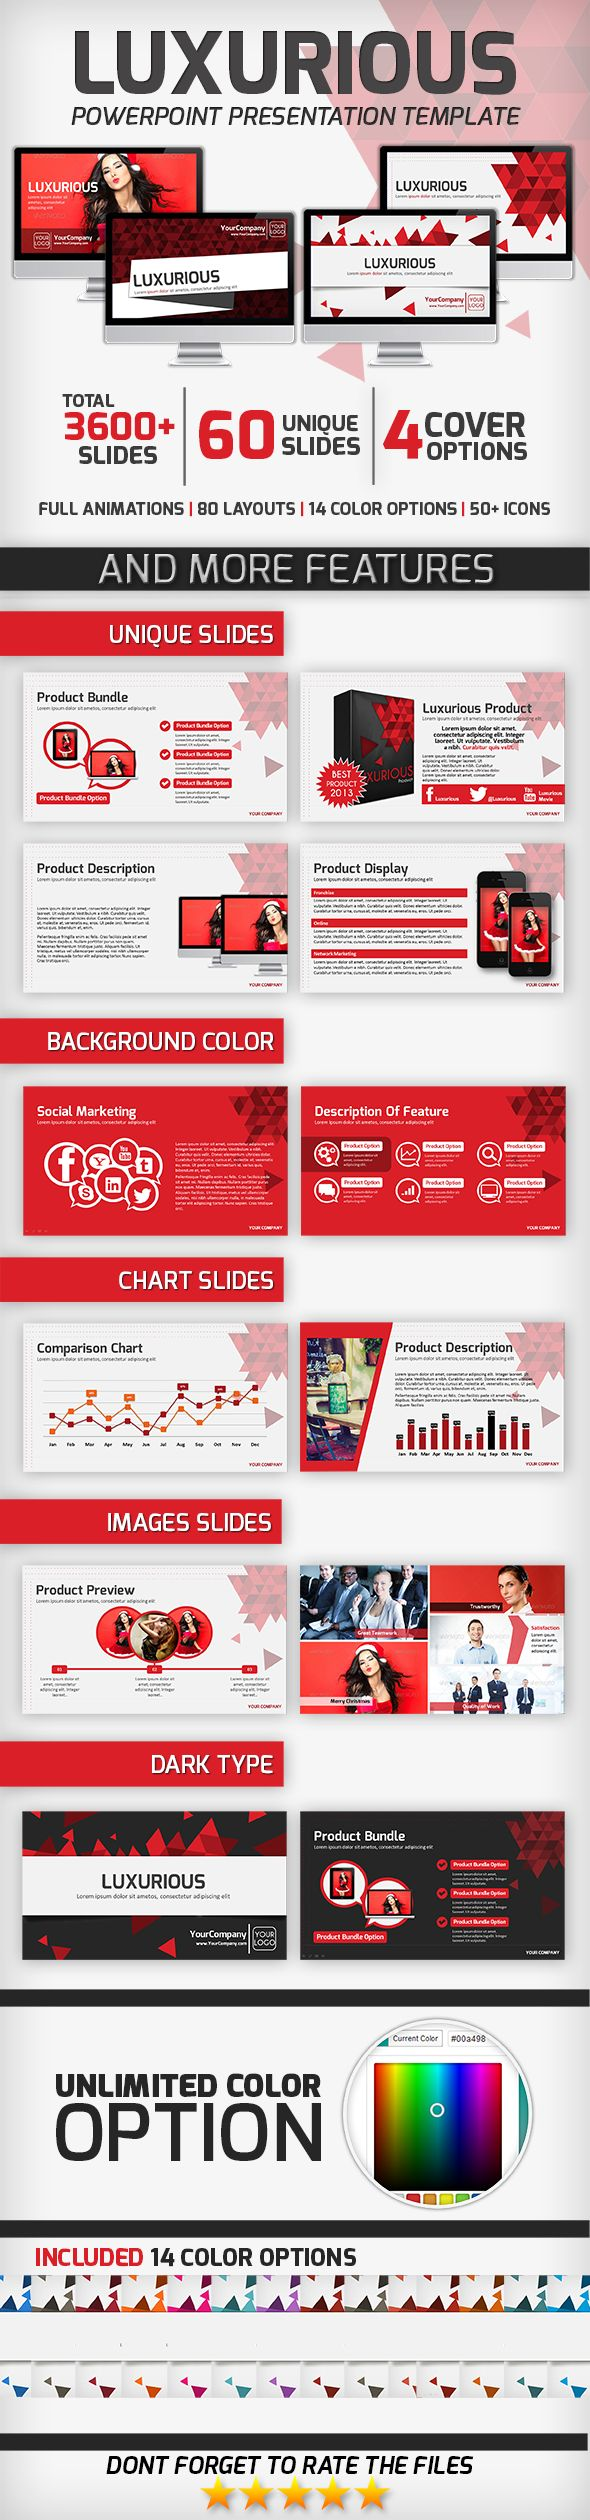 Luxurious - PowerPoint Presentation Template Download: http://graphicriver.net/item/luxurious-powerpoint-presentation-template/6284311?ref=PresentaKit